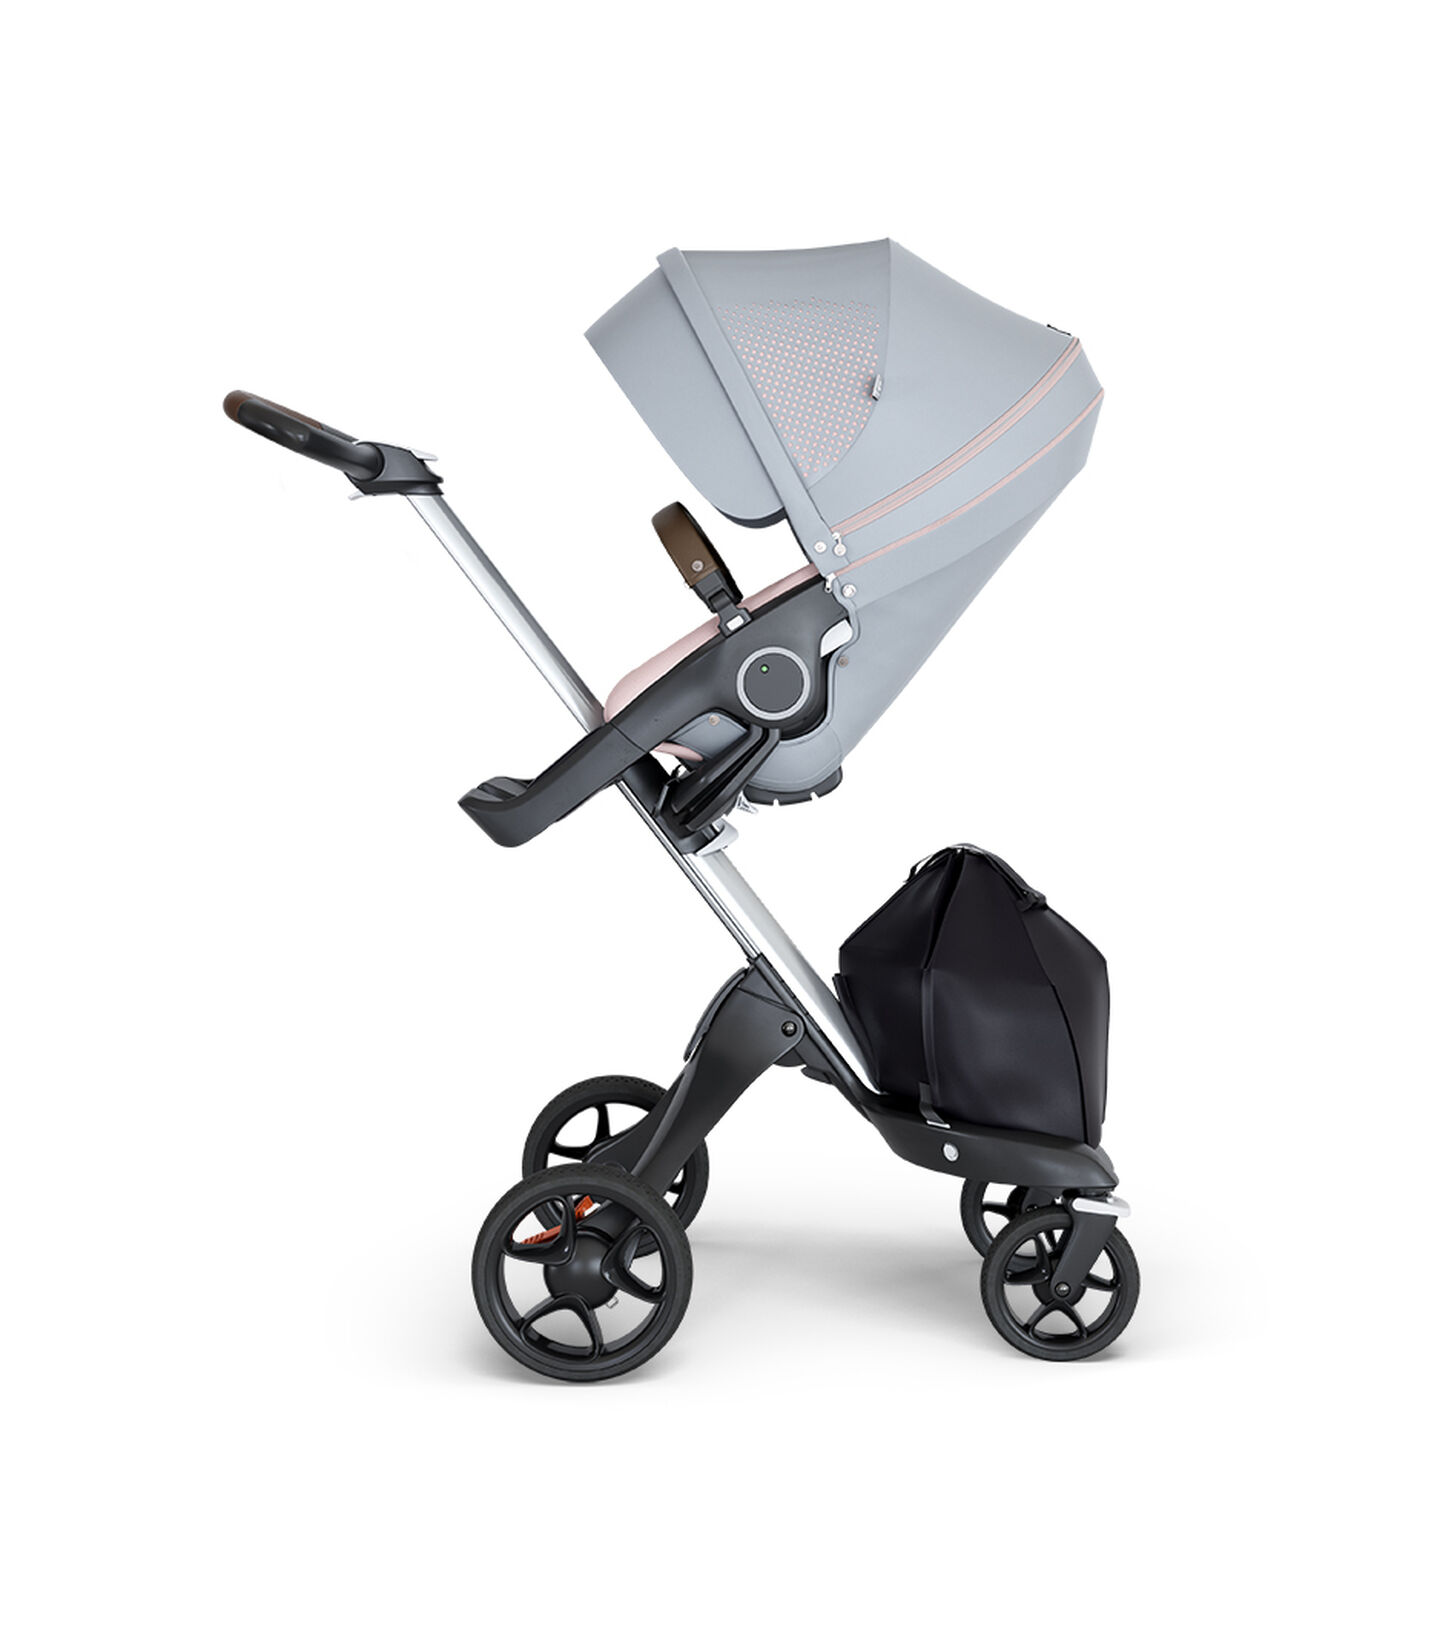 Stokke® Xplory® wtih Silver Chassis and Leatherette Brown handle. Stokke® Stroller Seat Athleisure Pink.